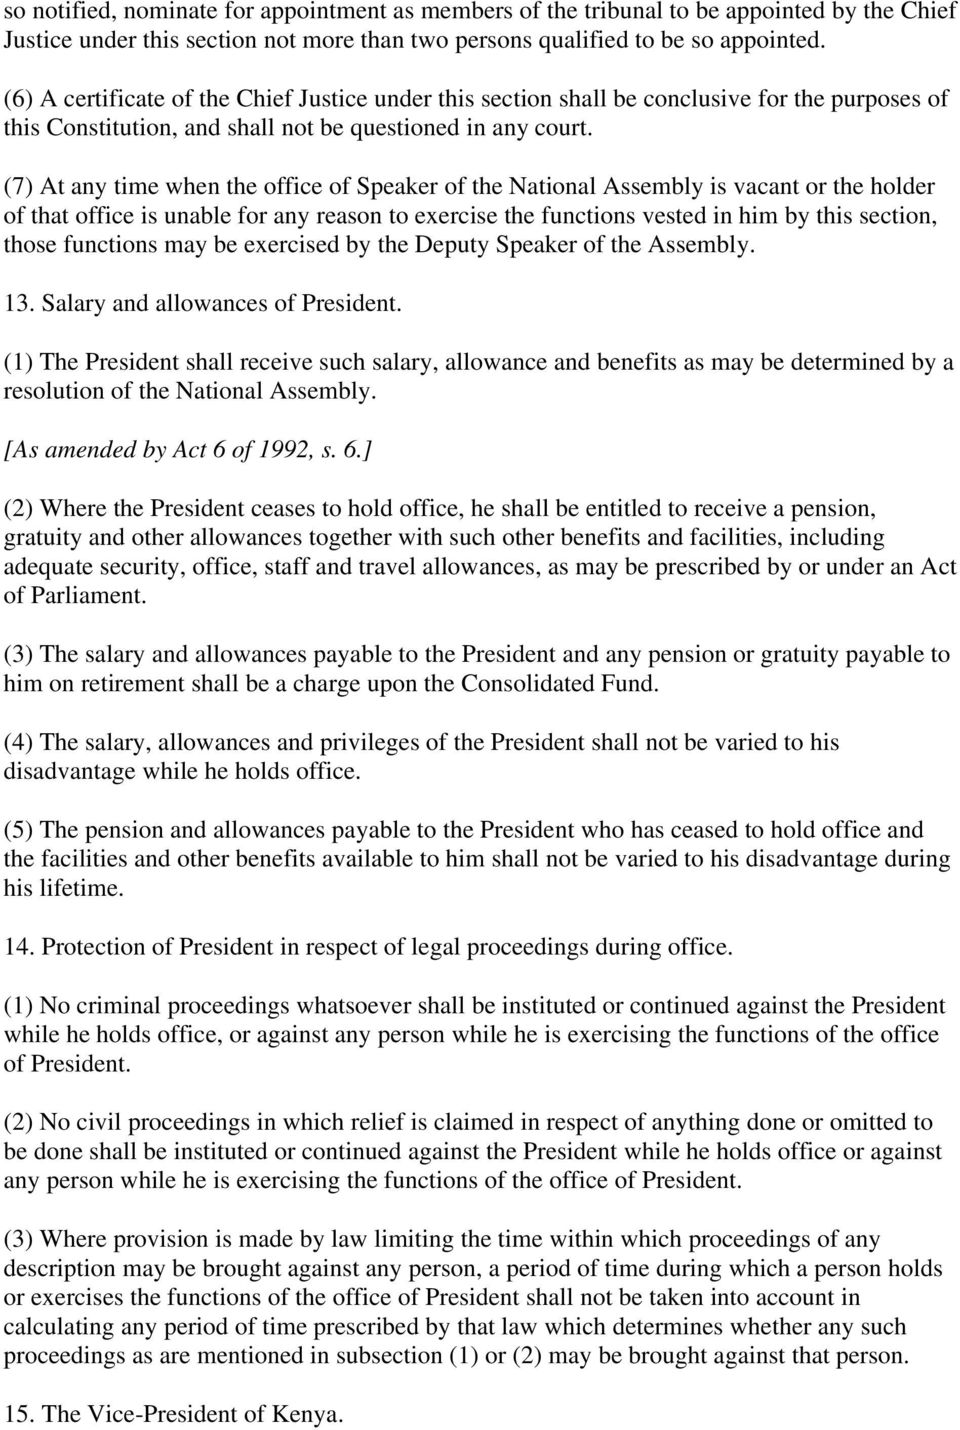 (7) At any time when the office of Speaker of the National Assembly is vacant or the holder of that office is unable for any reason to exercise the functions vested in him by this section, those